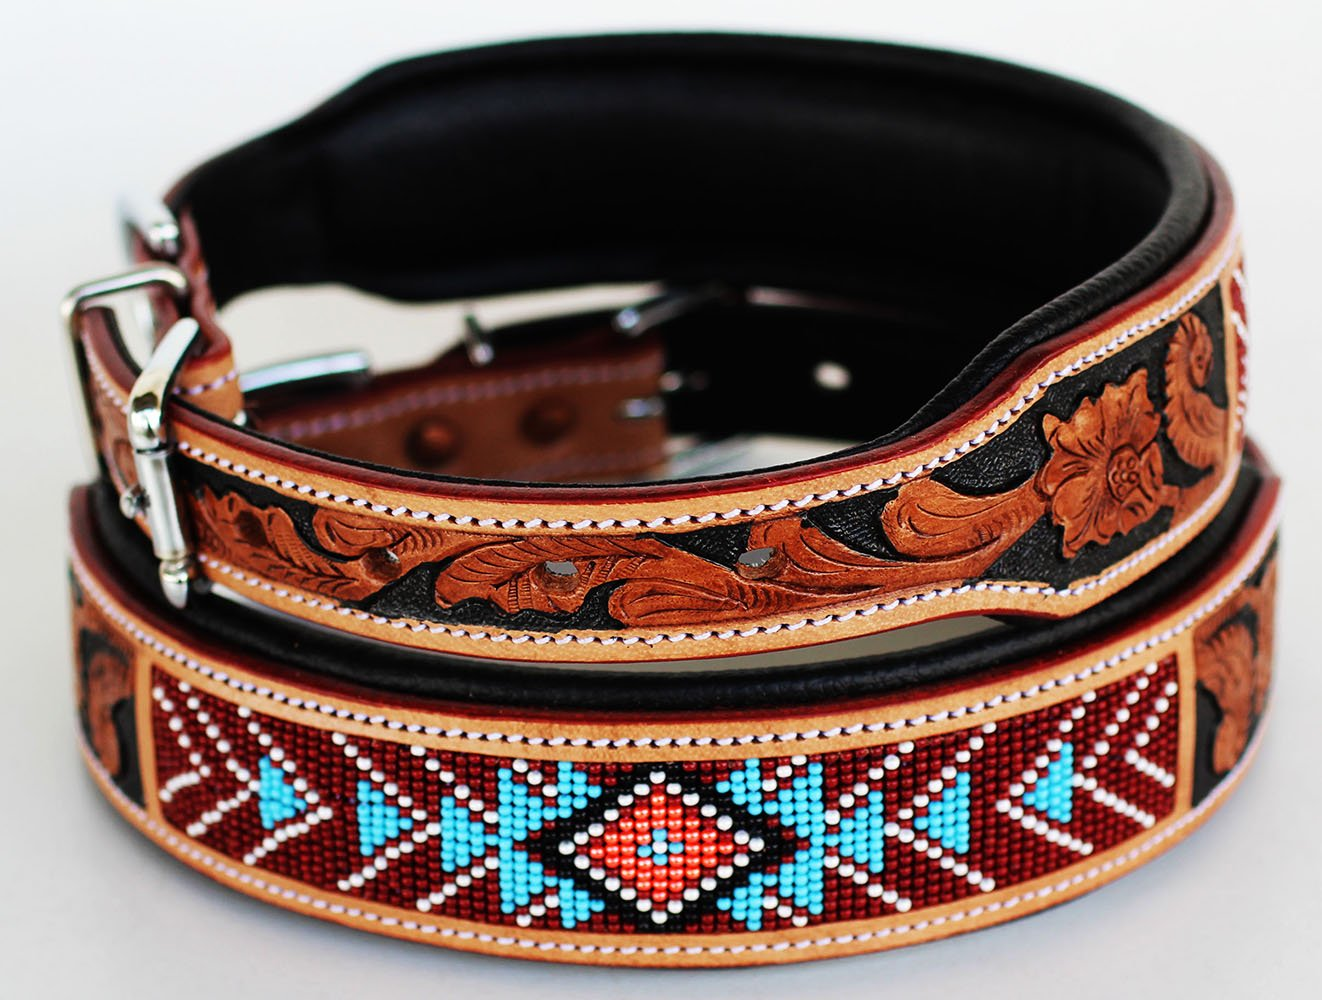 Medium 17''- 21'' Dog Puppy Collar Cow Leather Adjustable Padded Canine 6083